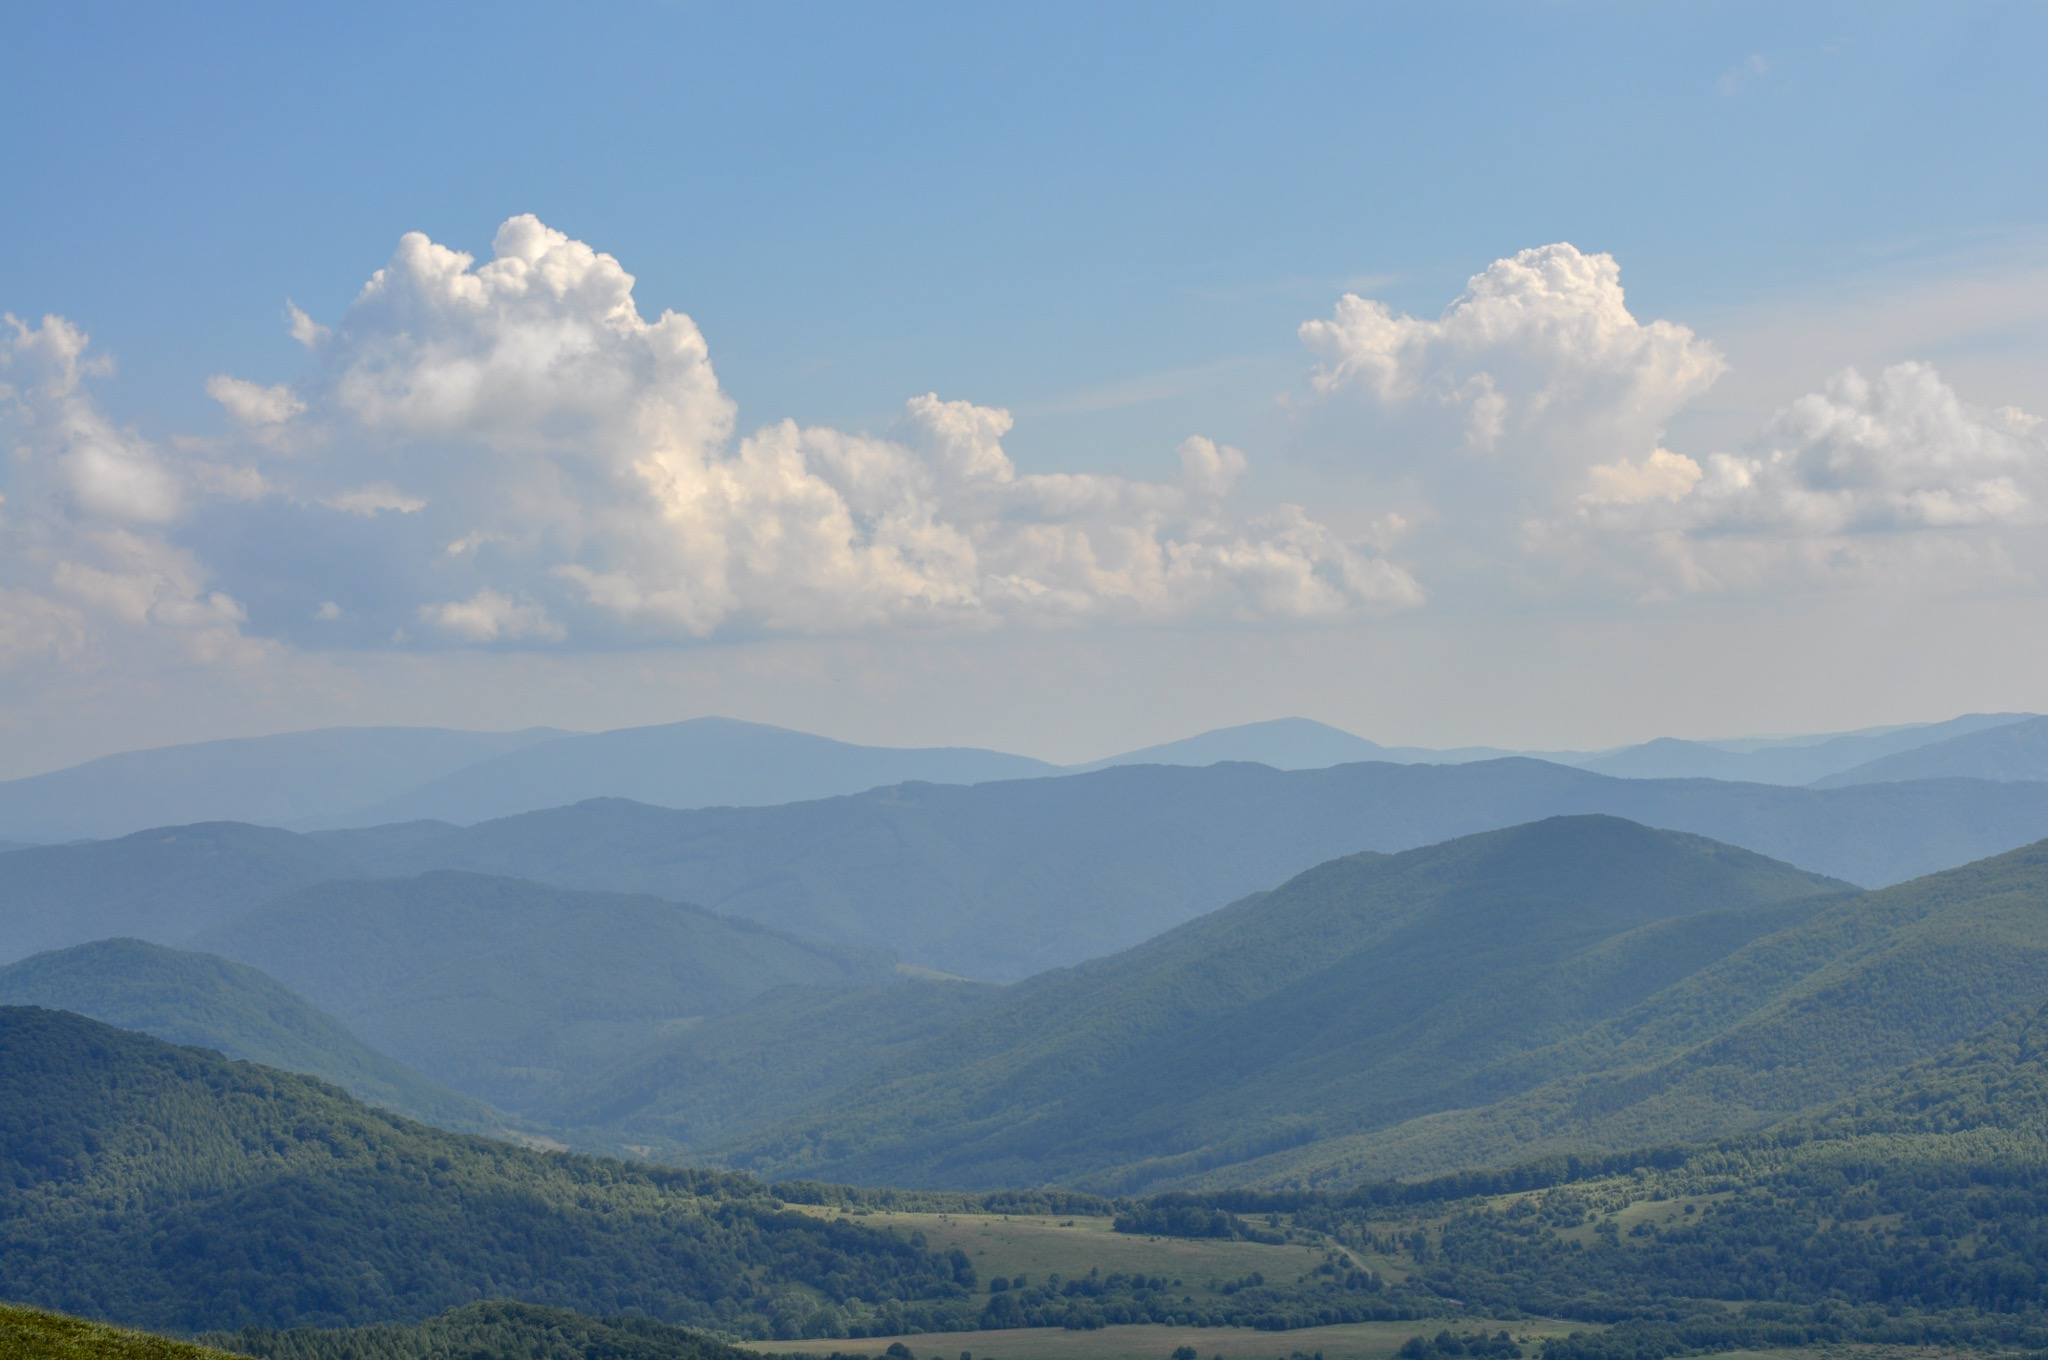 Green and blue mountain ranges in the Bieszczady National Park